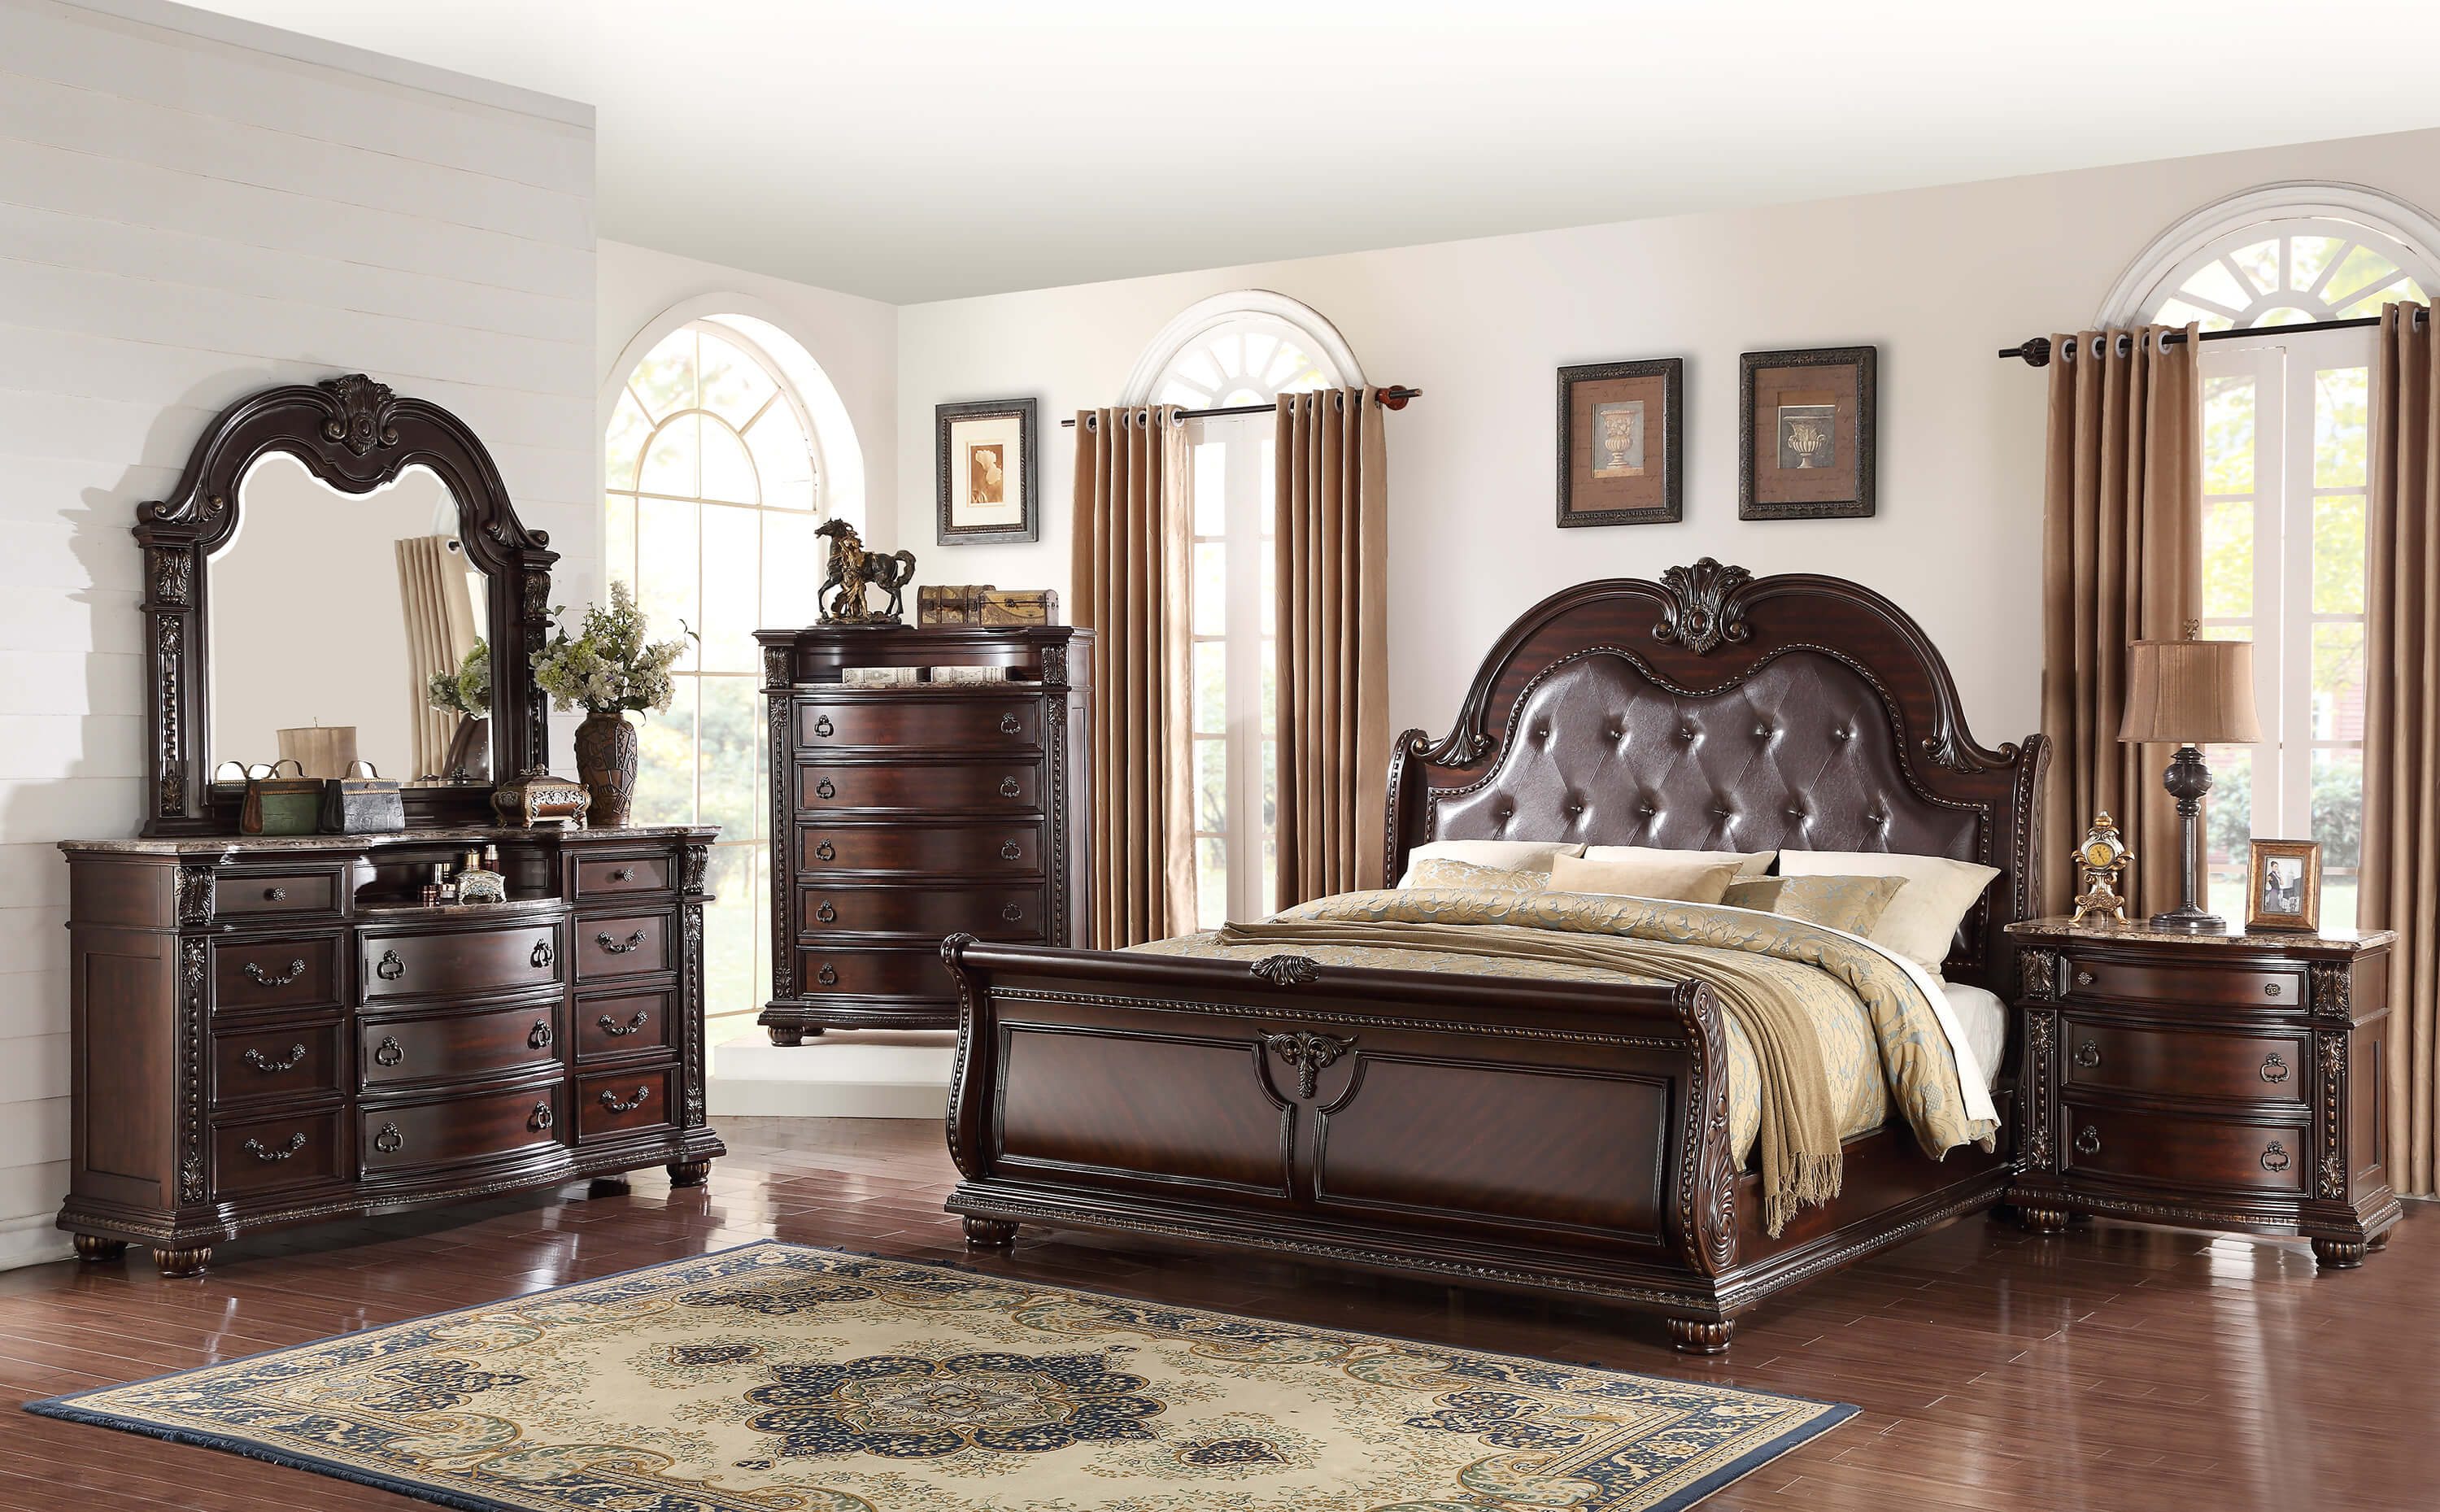 Stanley marble top bedroom set bedroom furniture sets for Best place for bedroom furniture